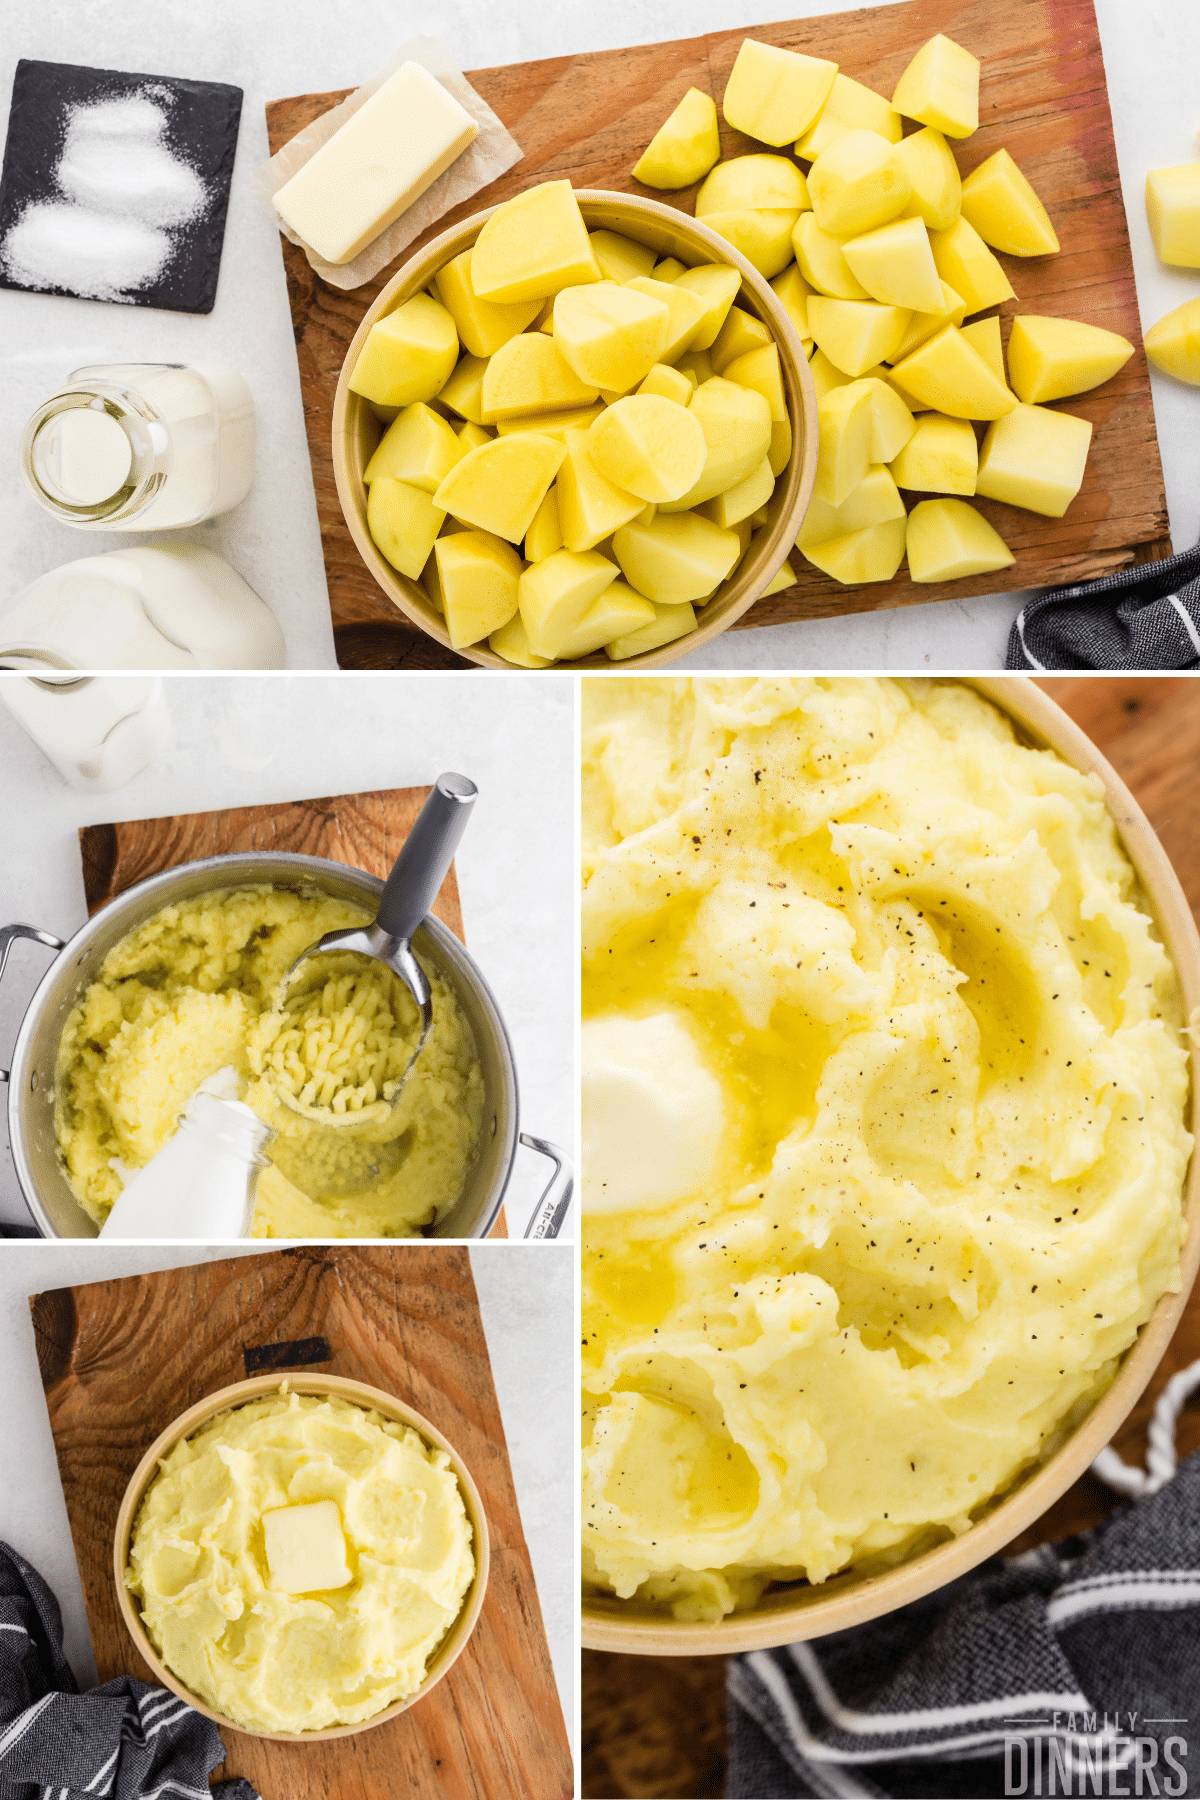 collage - yellow cut up potatoes in a bowl and on a cutting board next to a stick of butter, salt and milk. Potatoes being mashed in a silver pot and a finished photo of mashed potatoes in a bowl.